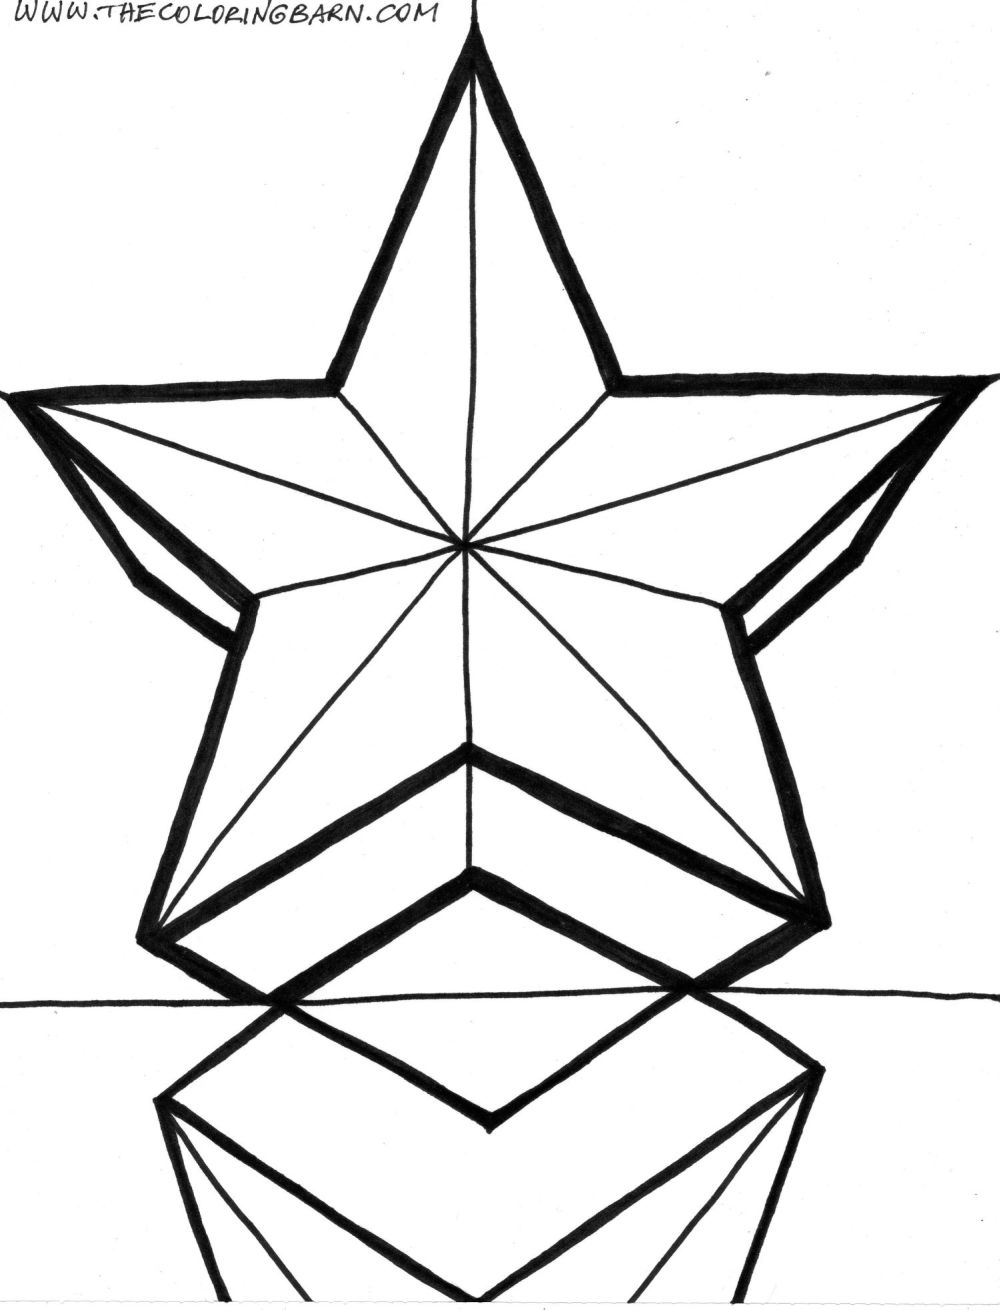 coloring star images star coloring download star coloring for free 2019 coloring star images